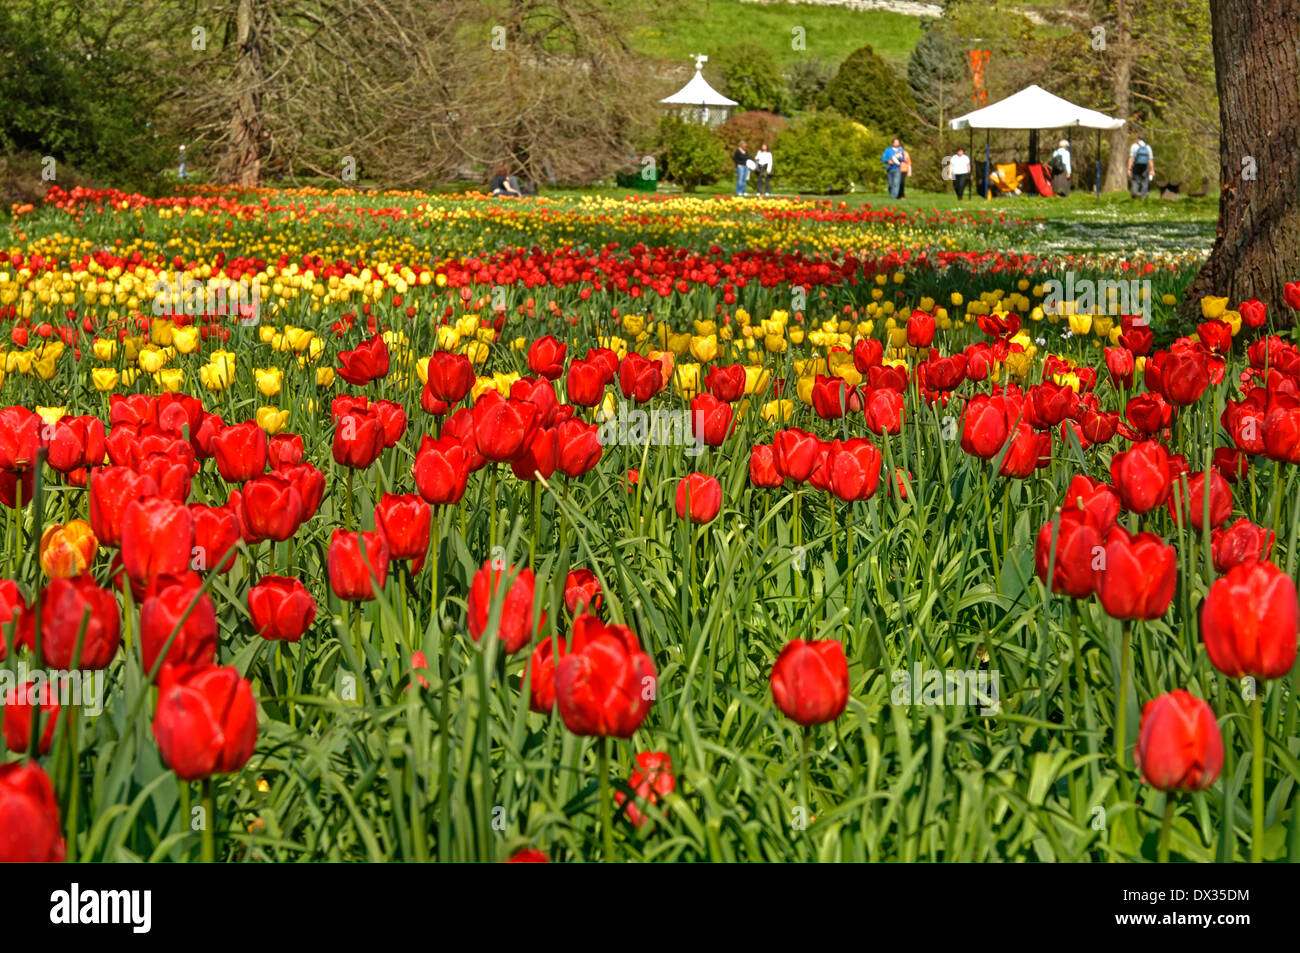 Red and yellow tulip field - Stock Image